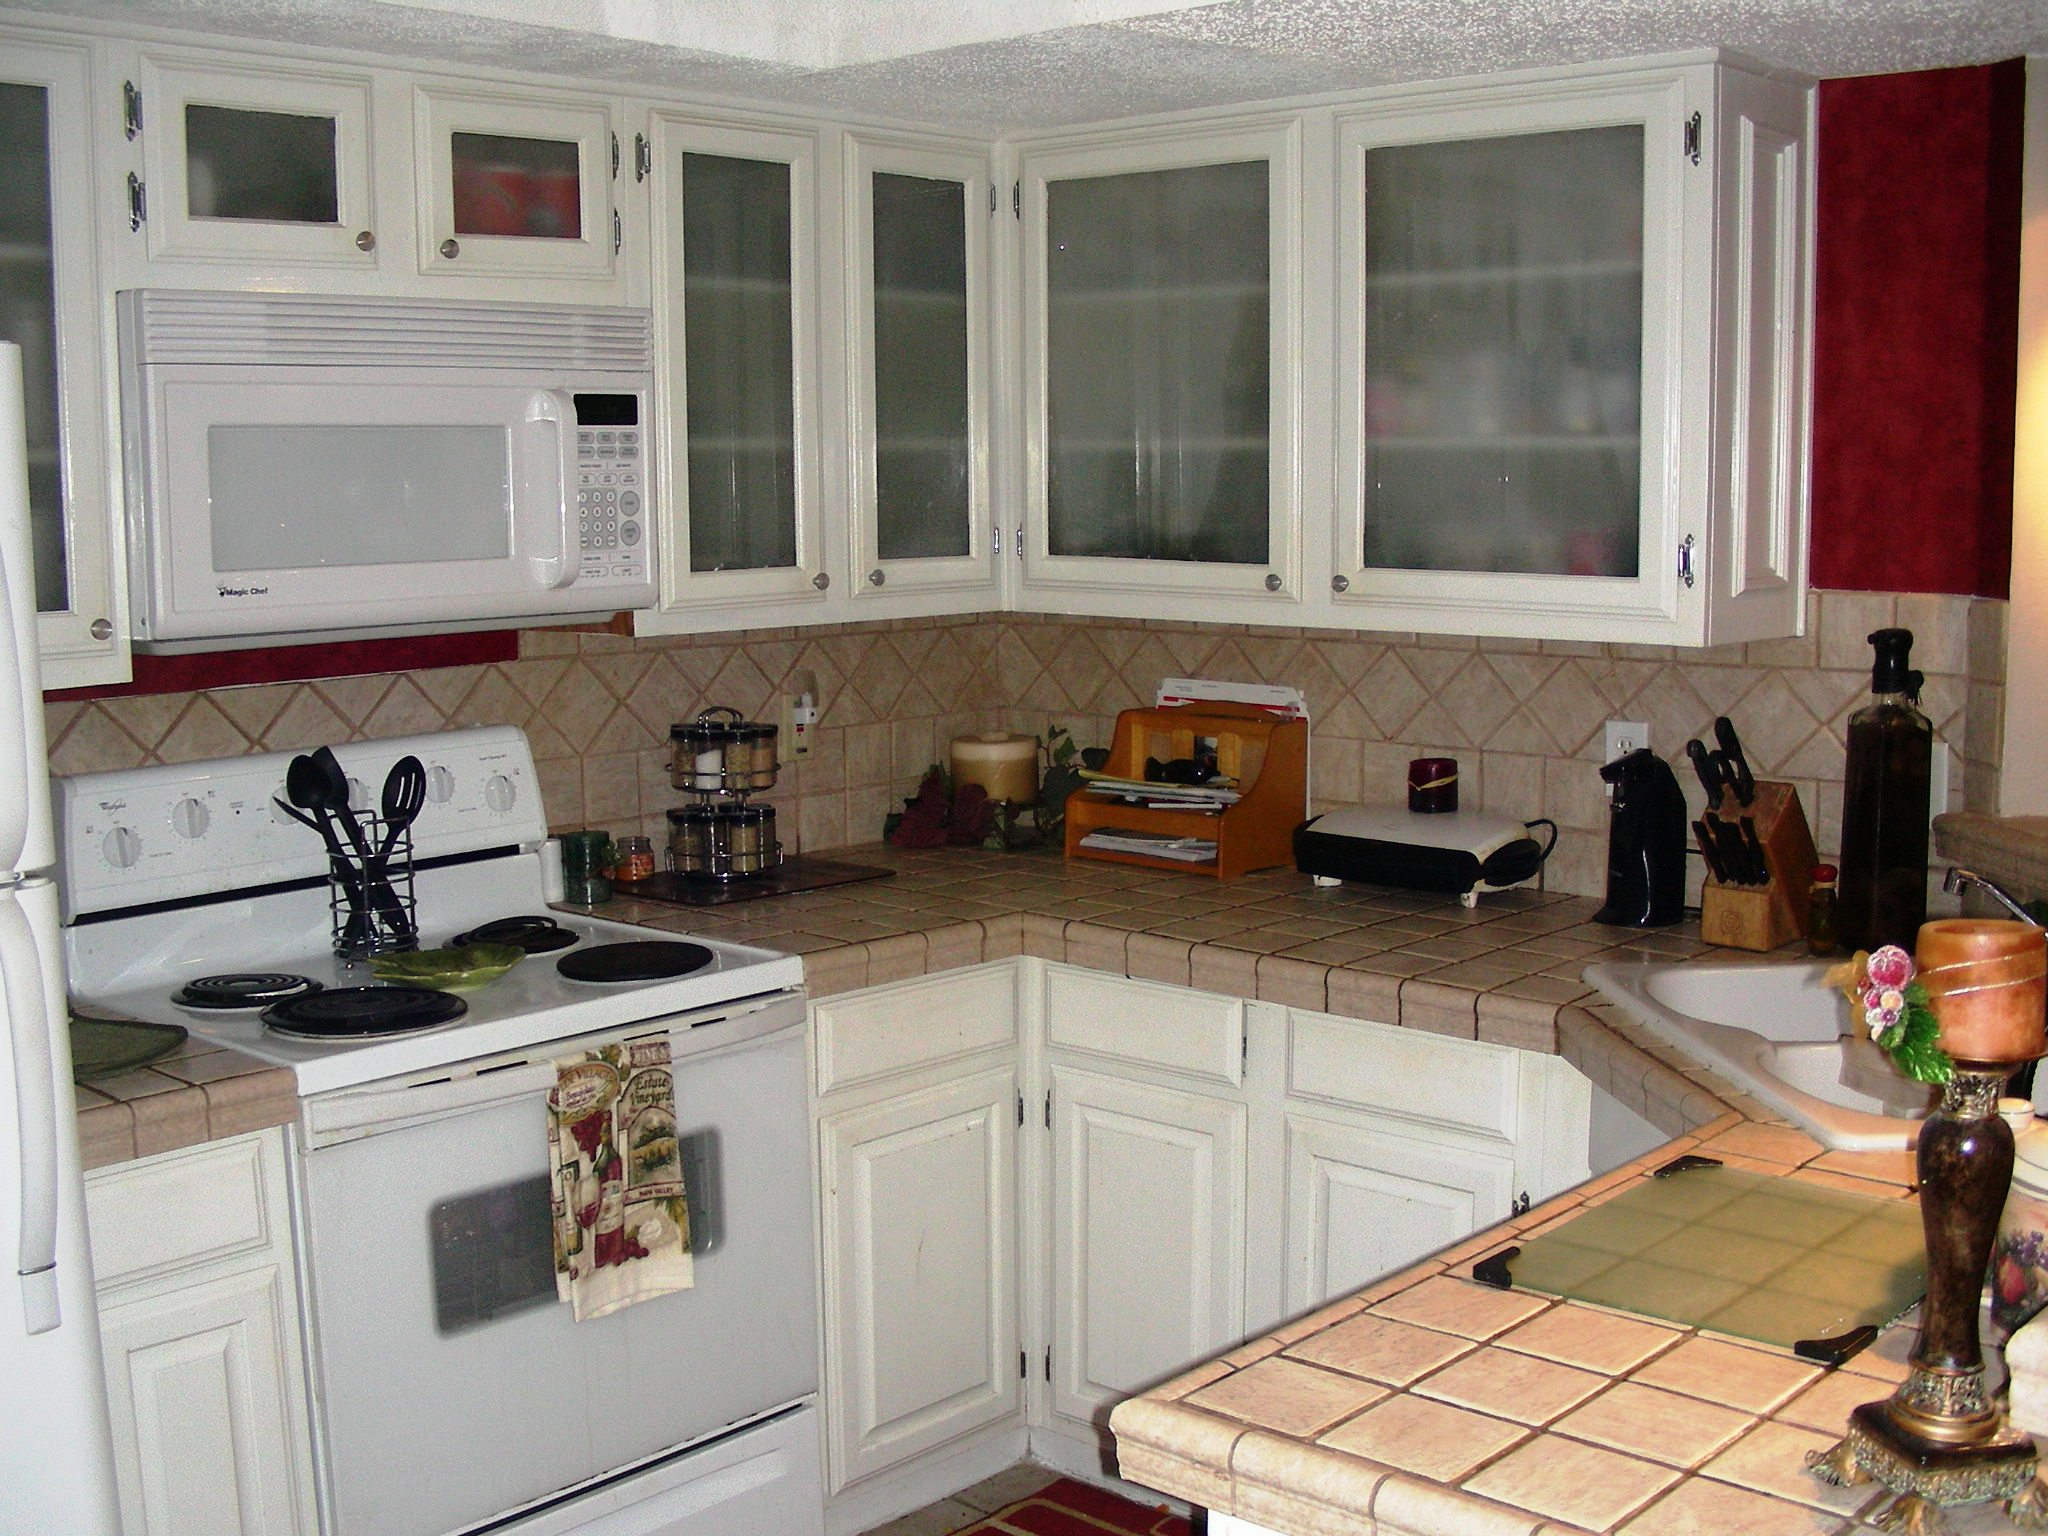 Springstead Condo Kitchen